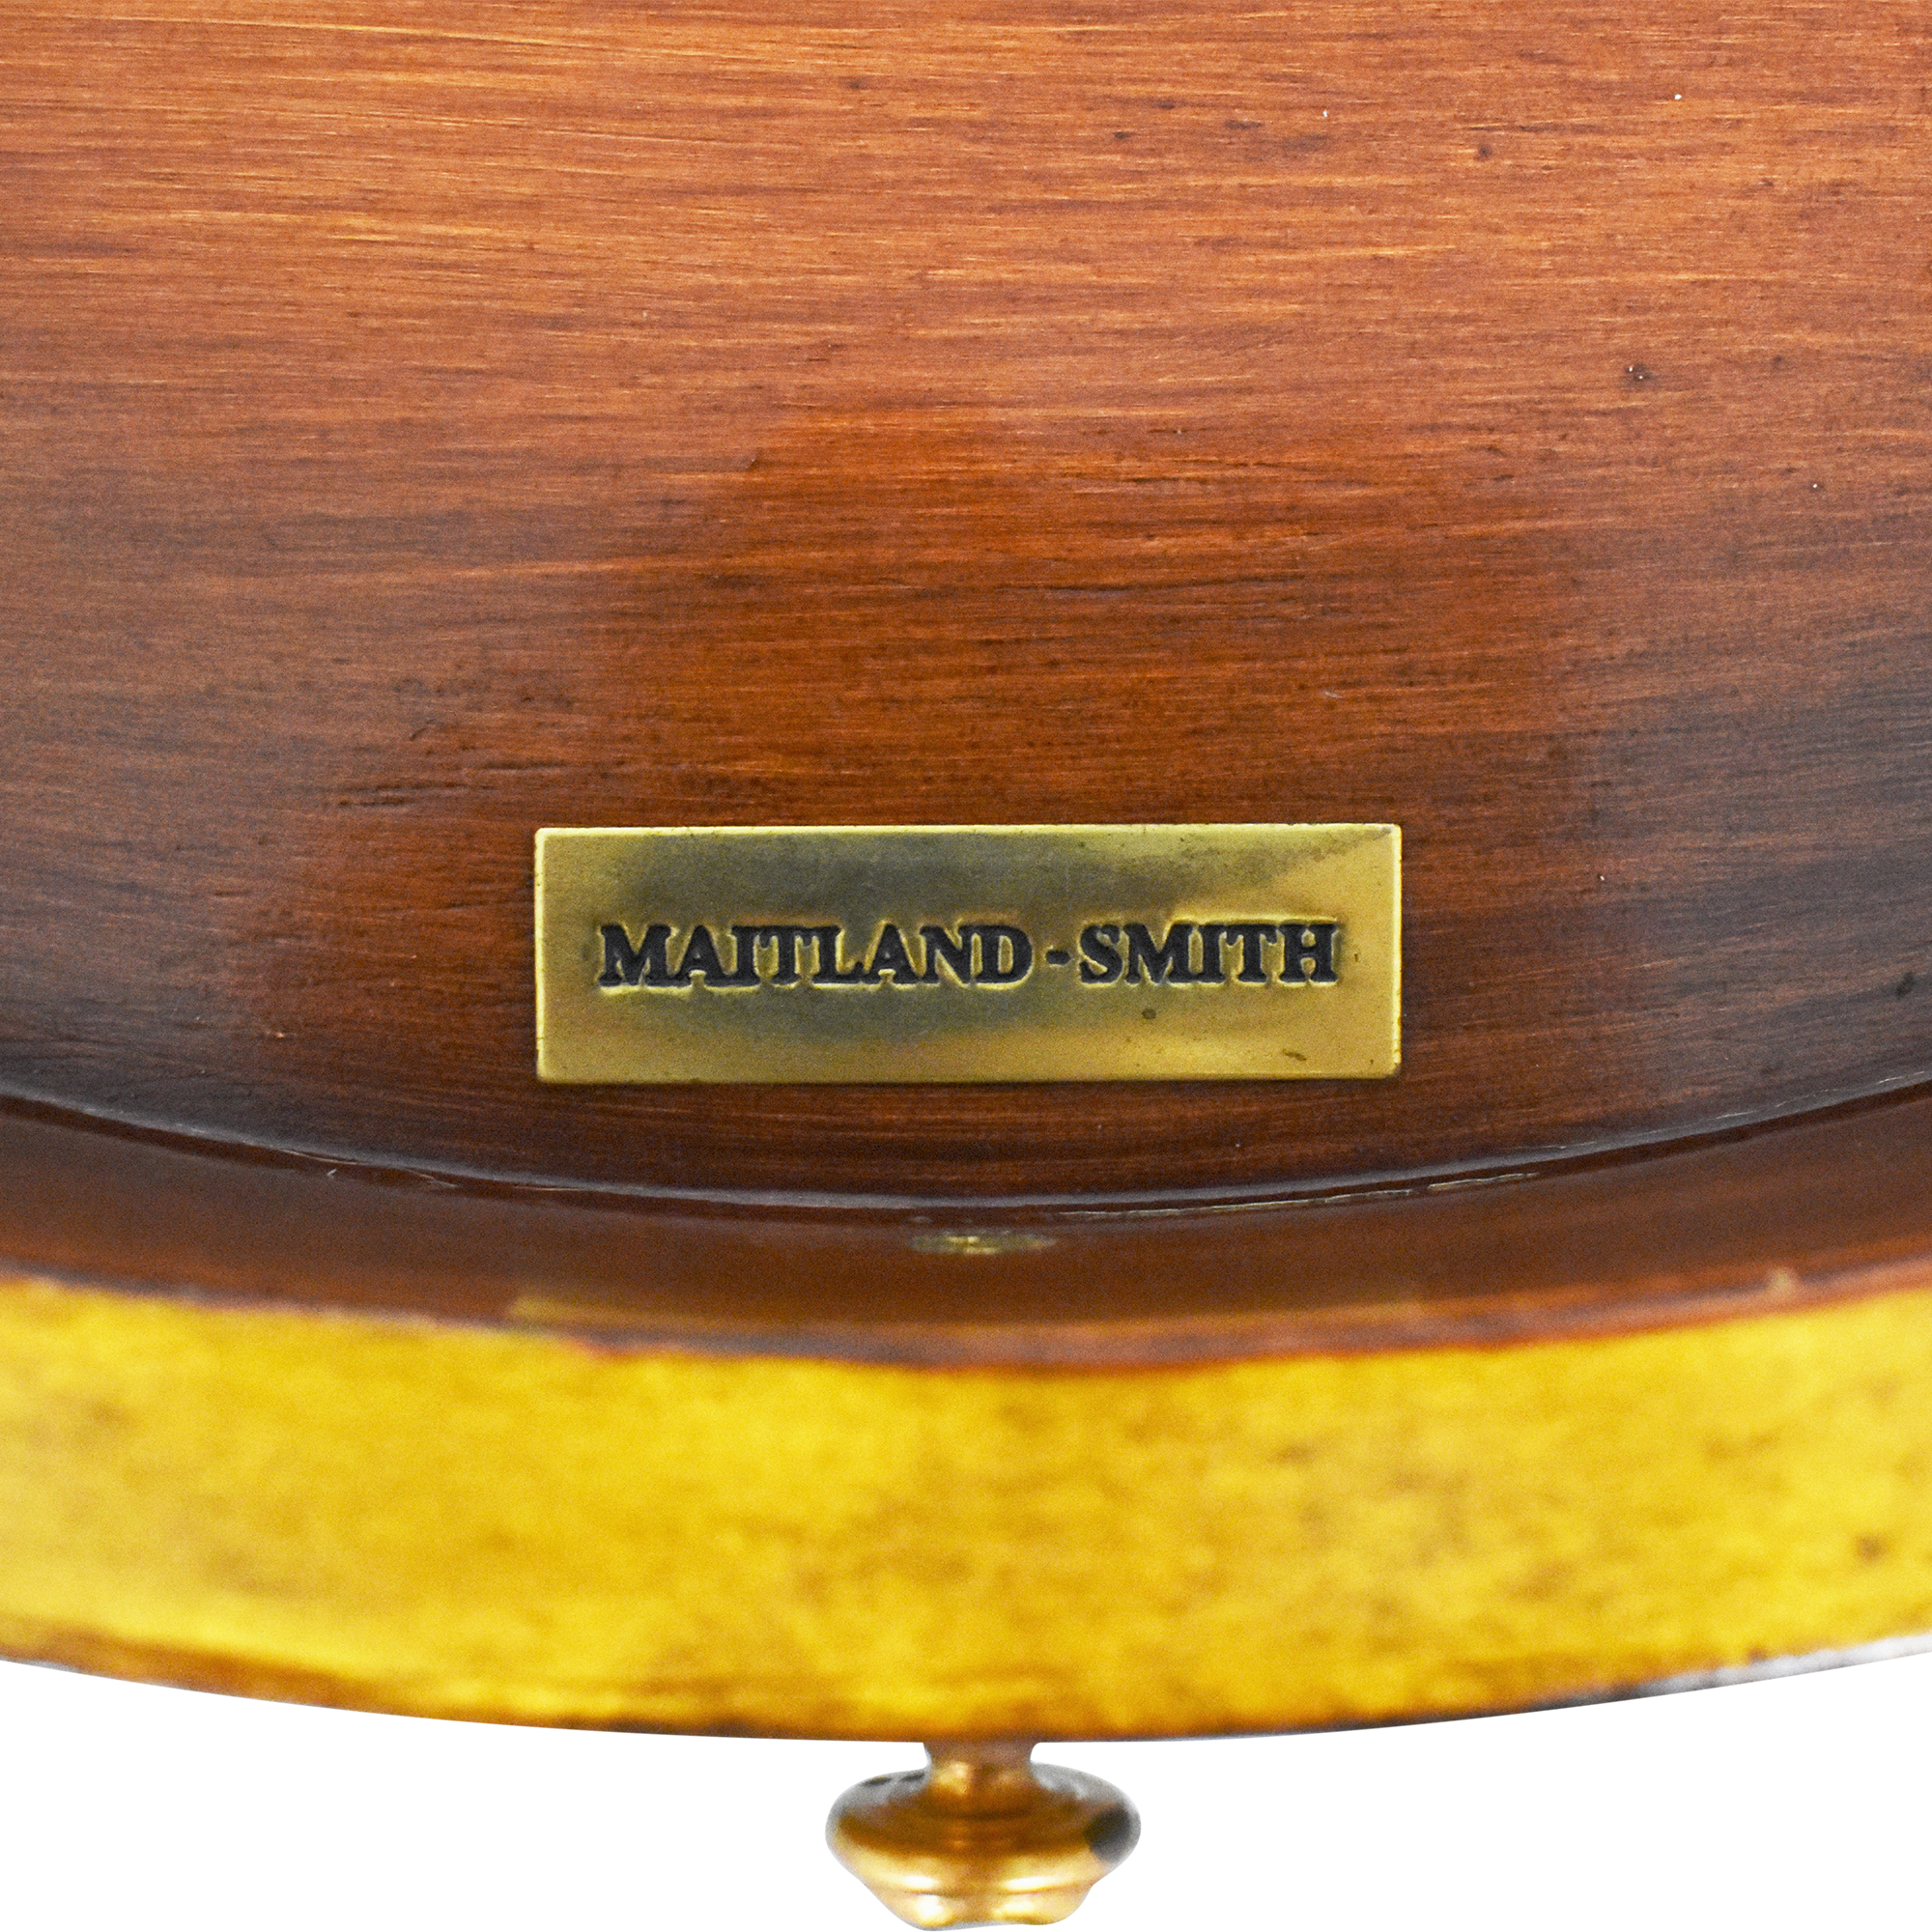 Maitland-Smith Maitland-Smith Round Accent Table coupon